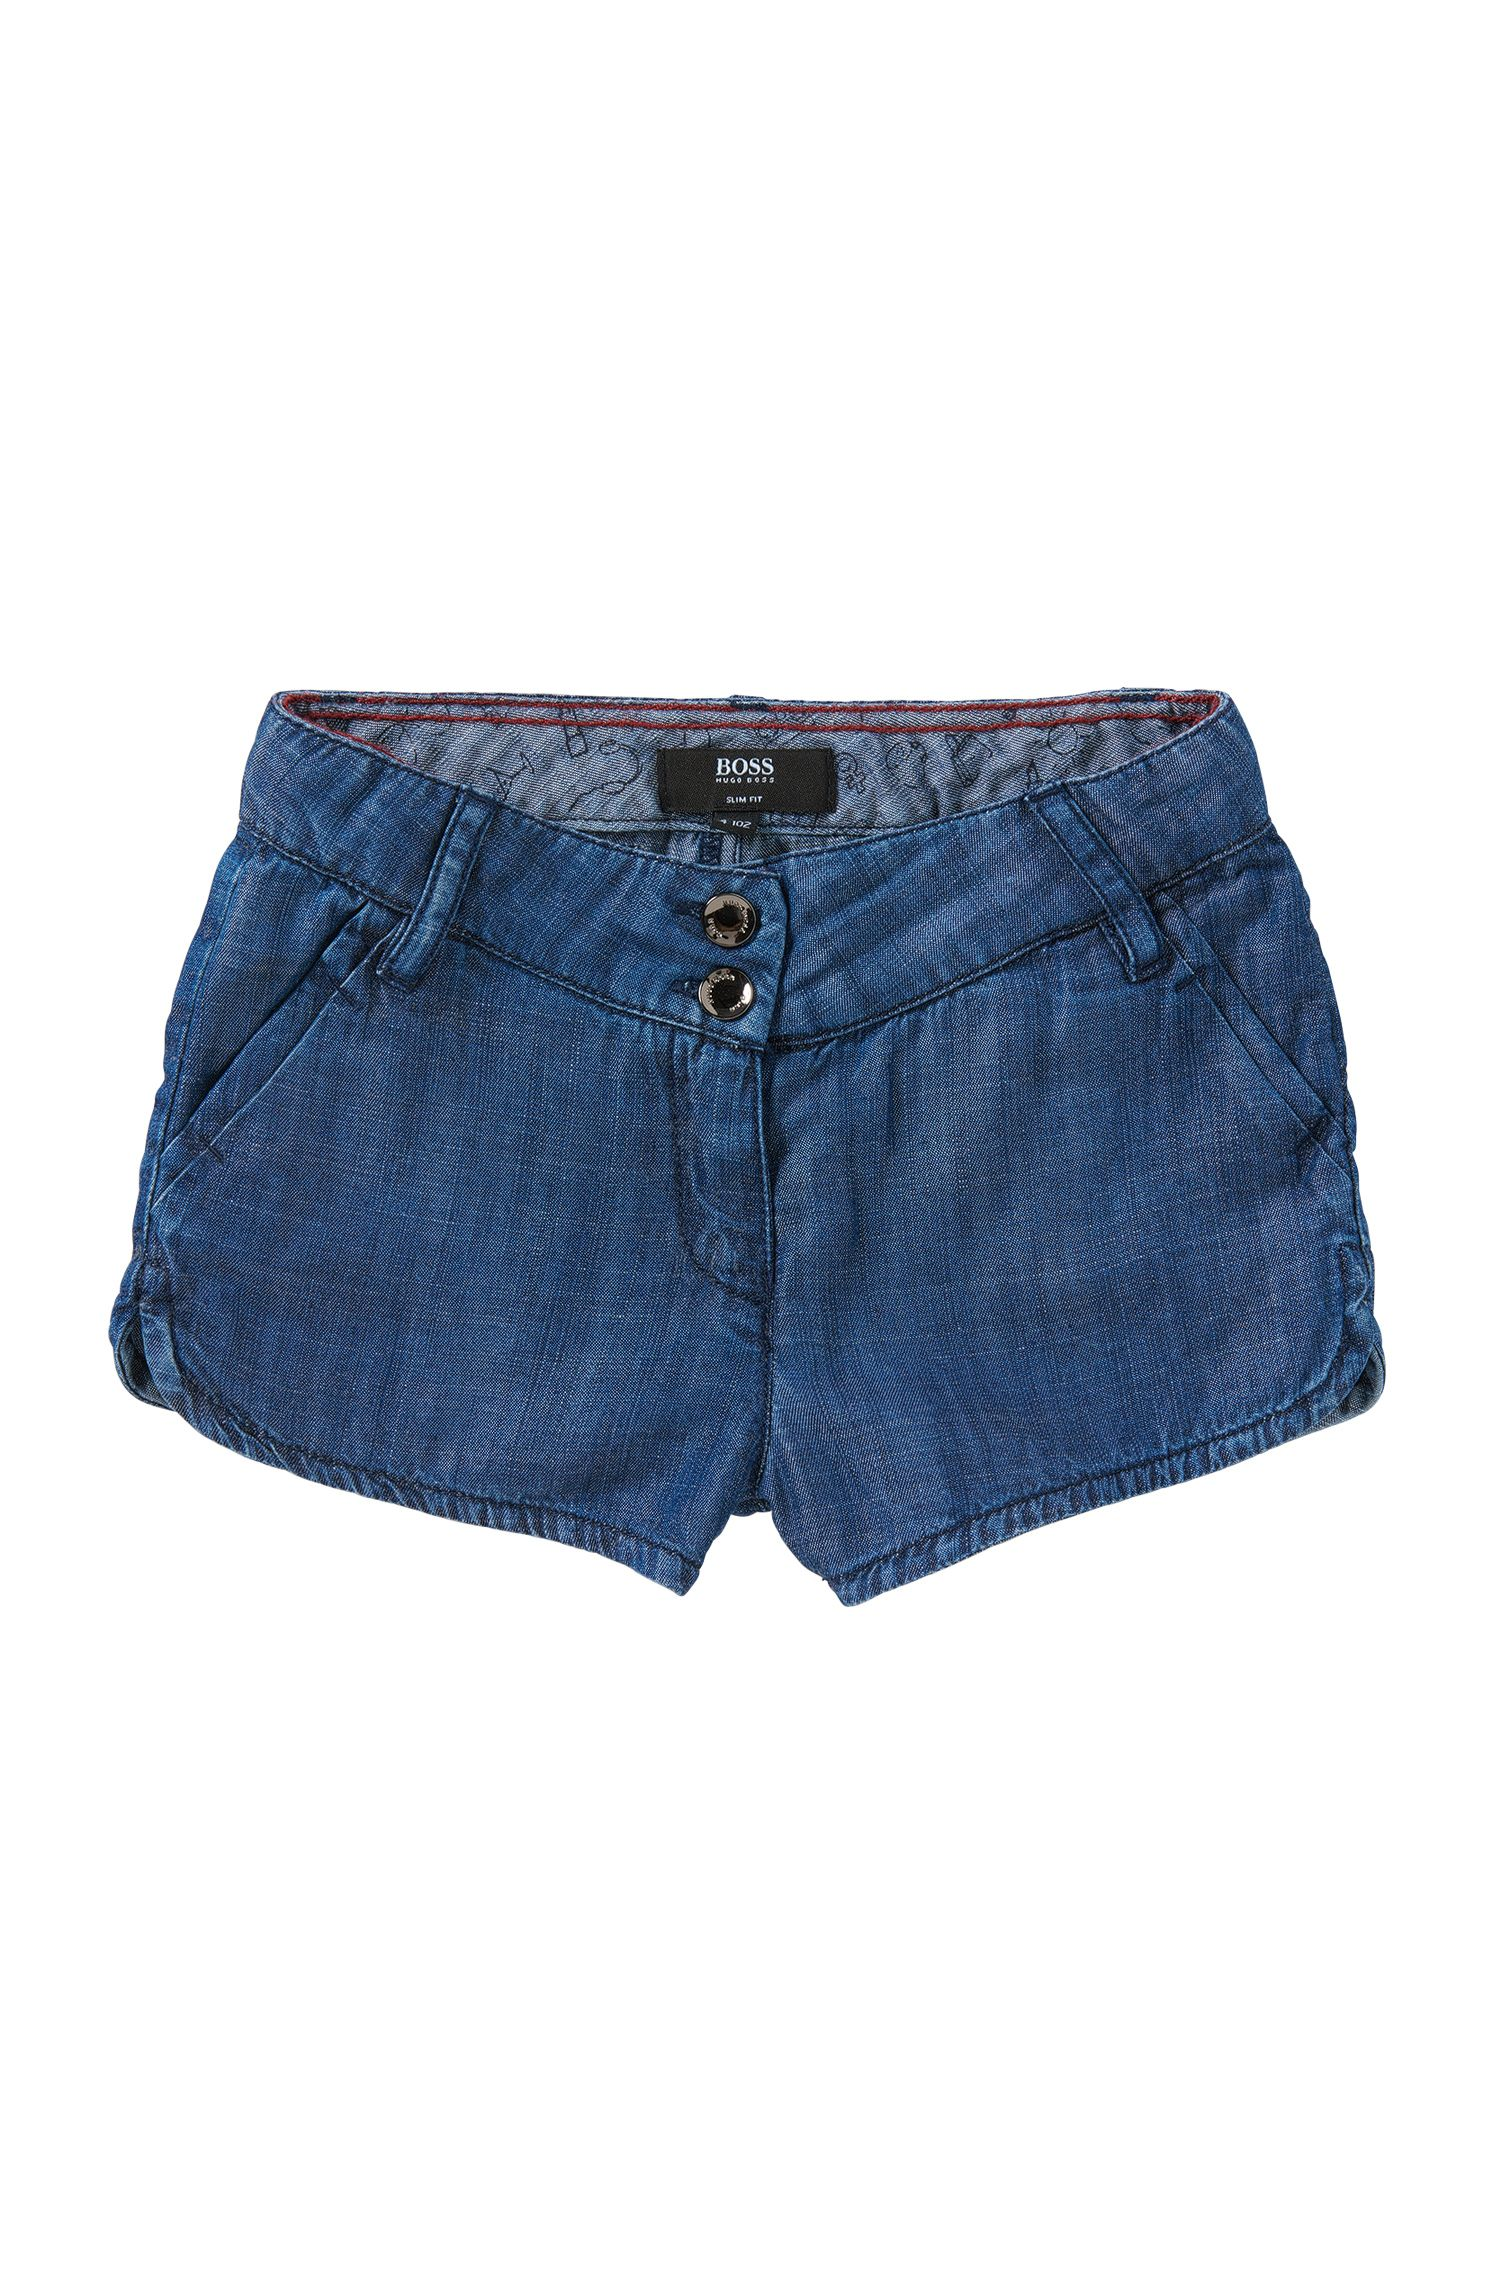 Slim-Fit Kids-Shorts in Denim-Optik: 'J14174'